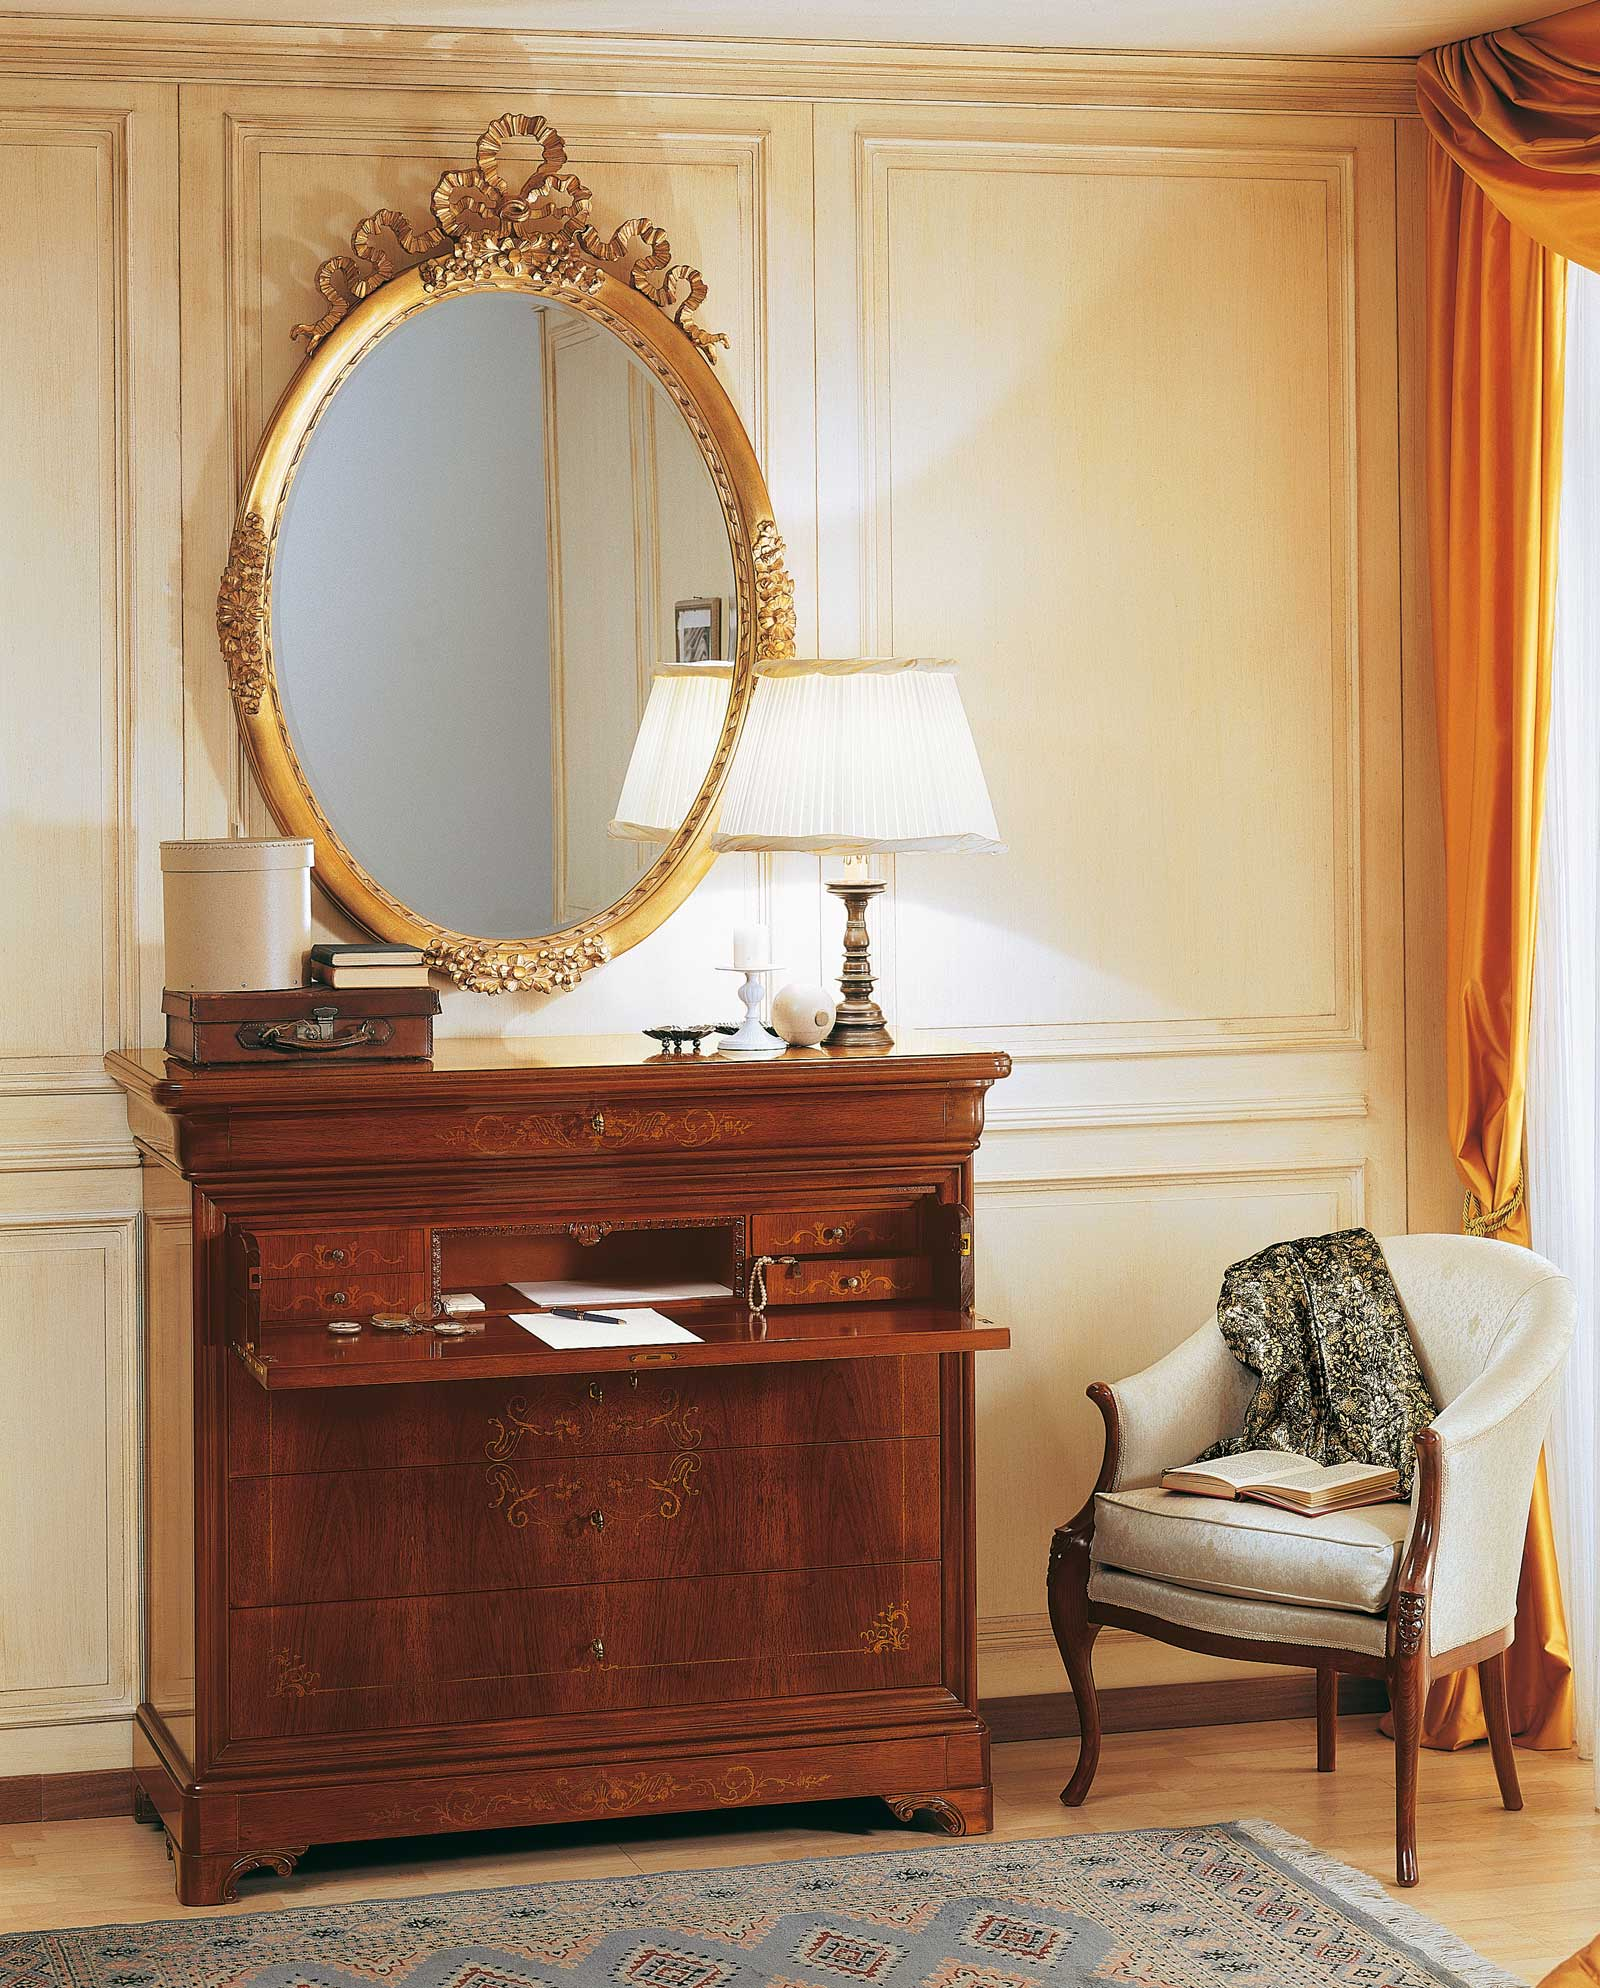 19th century french bedroom, inlaid trumeau and wall ...